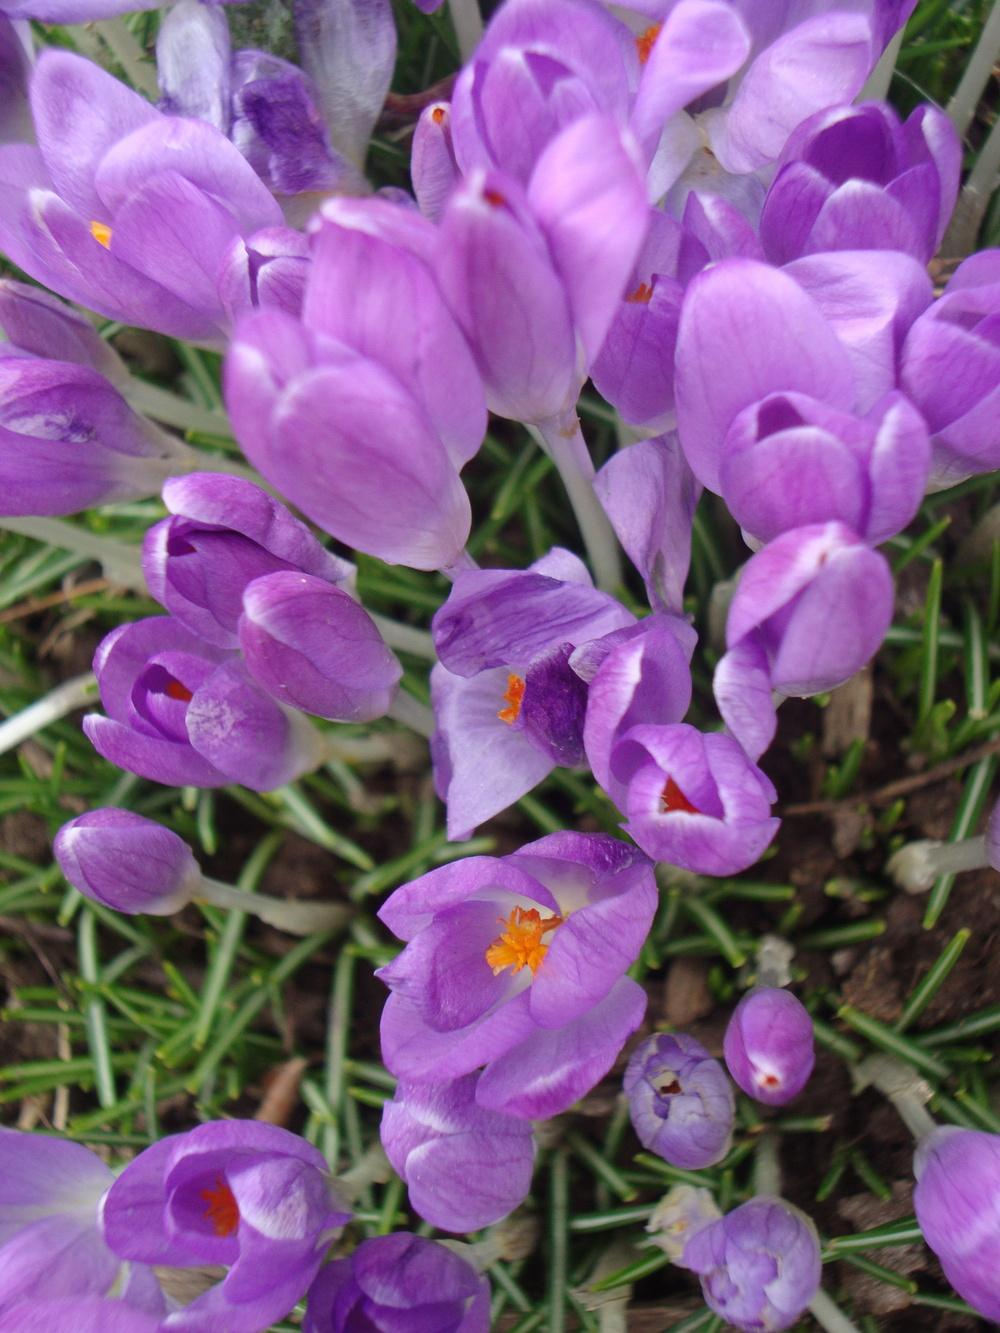 Photo of Crocus uploaded by Paul2032